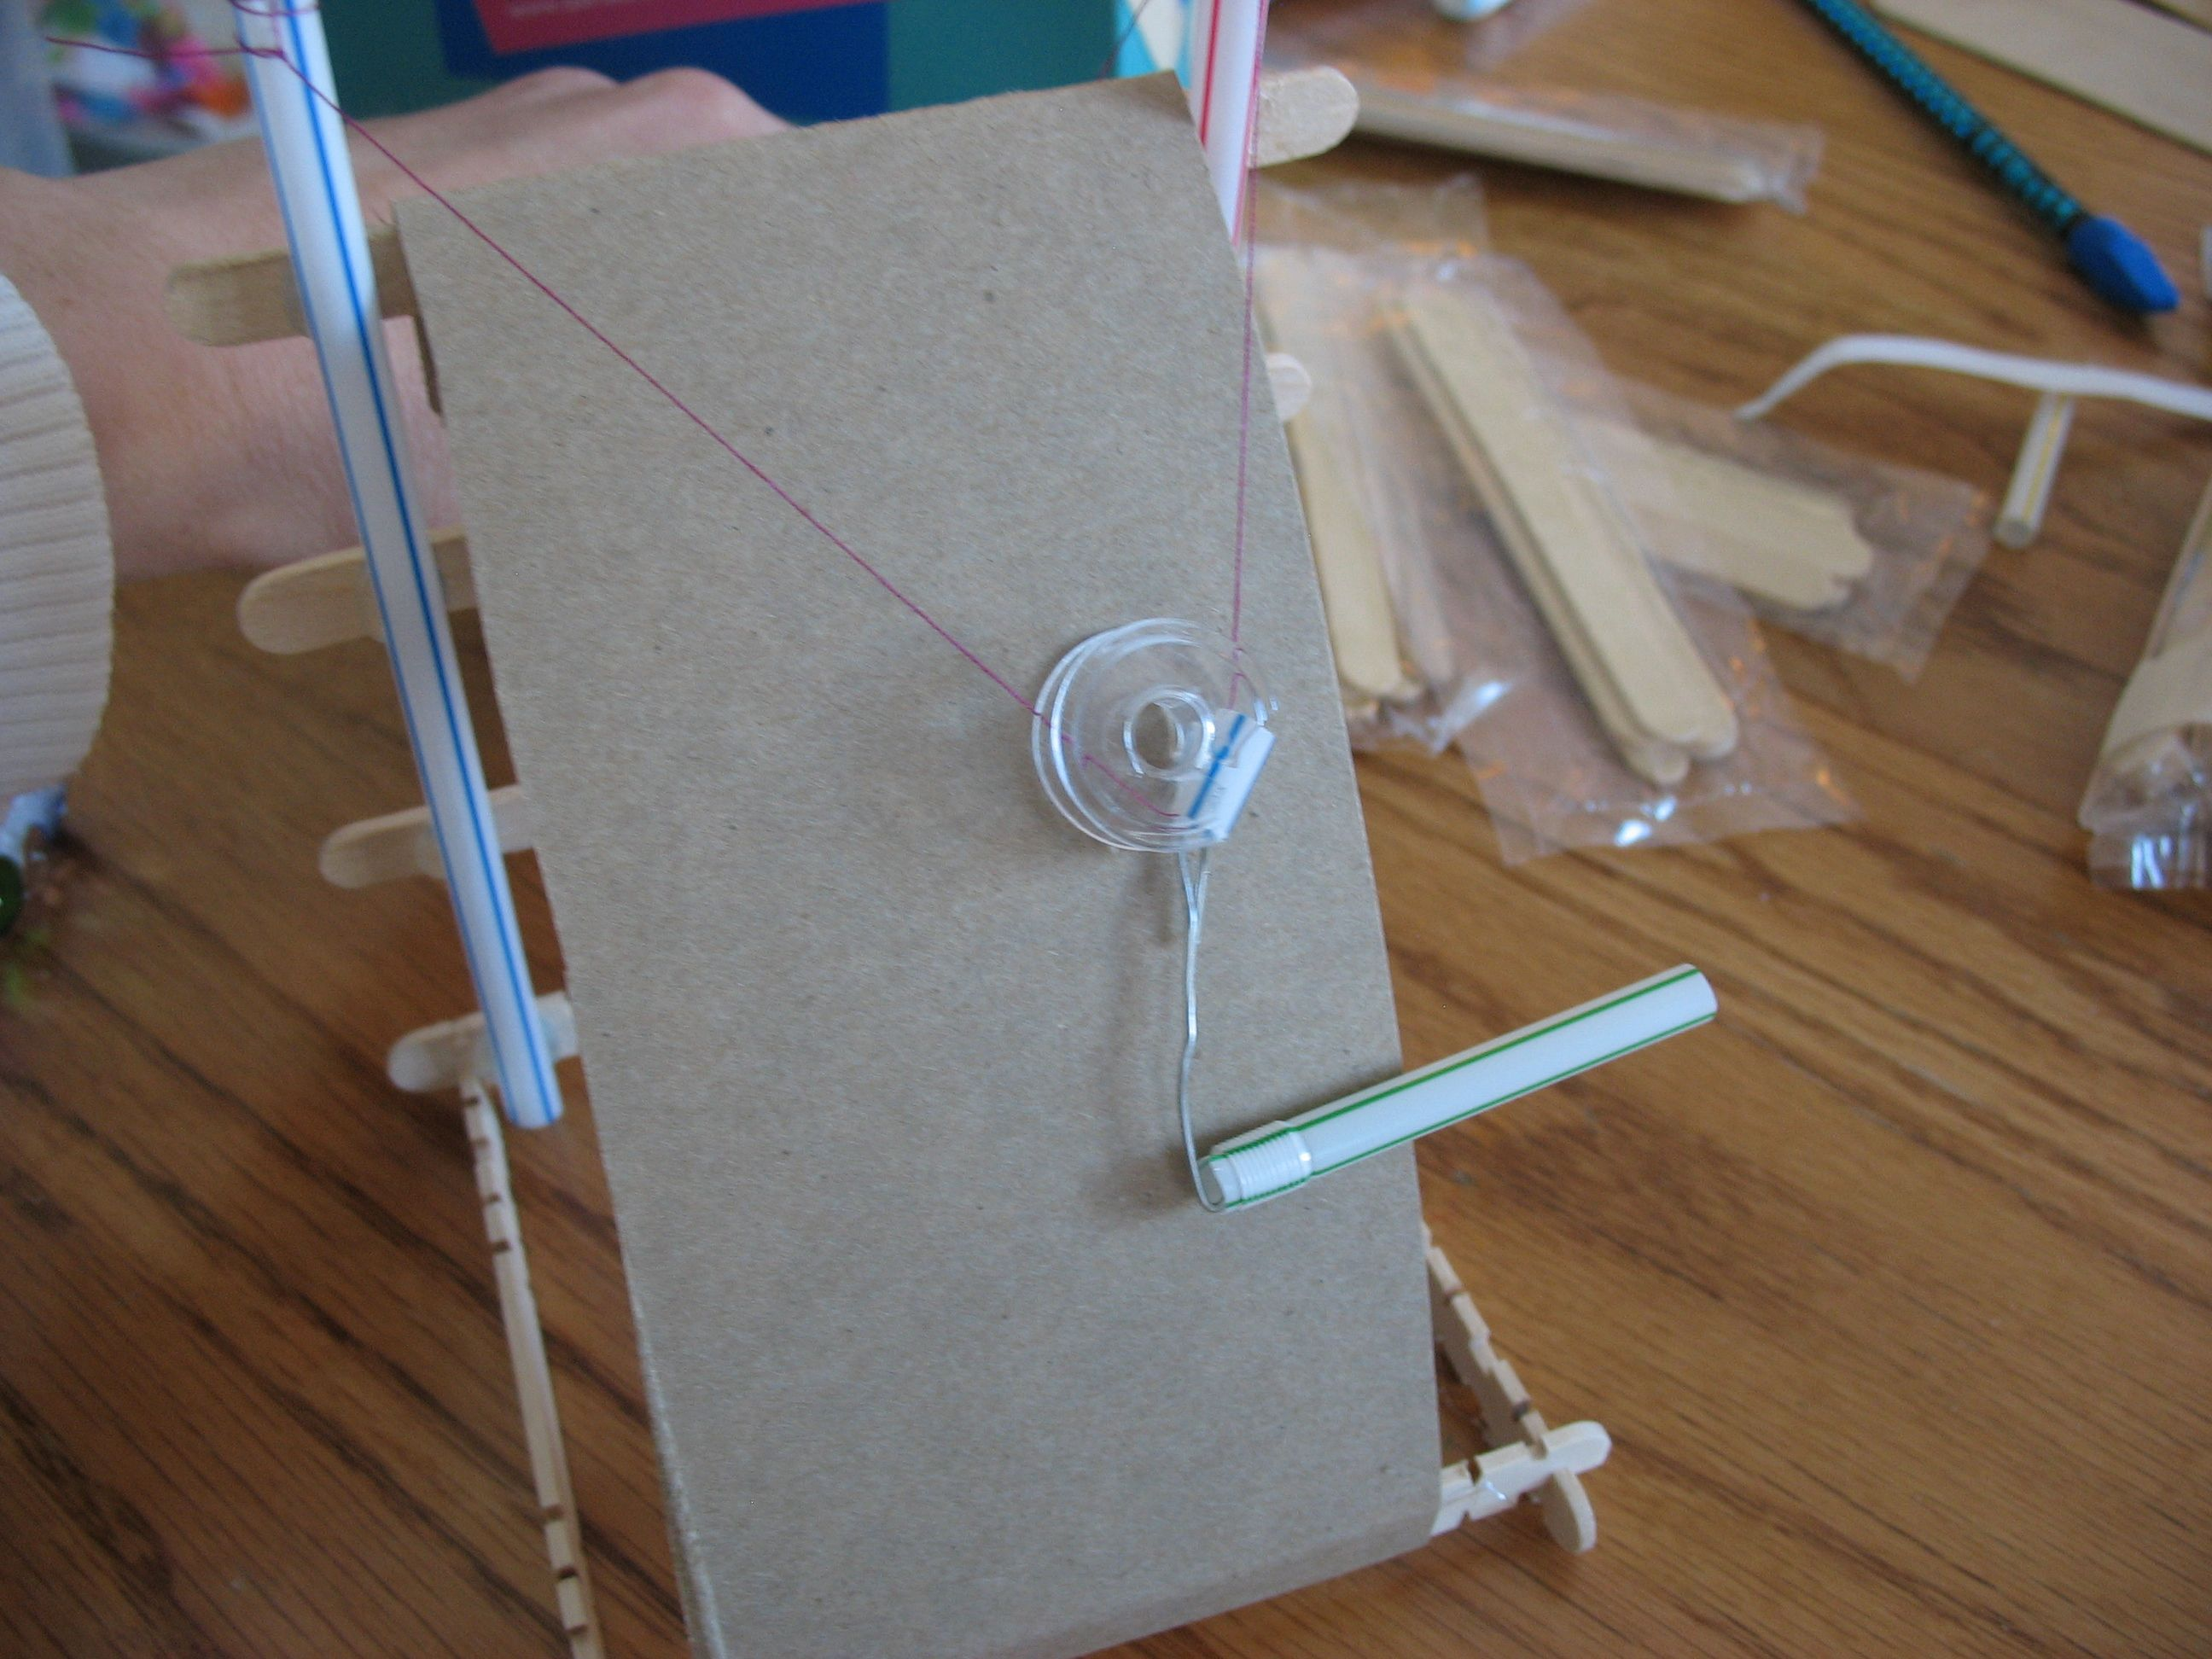 Pulley Using Empty Tape Roll Straws And Cardboard